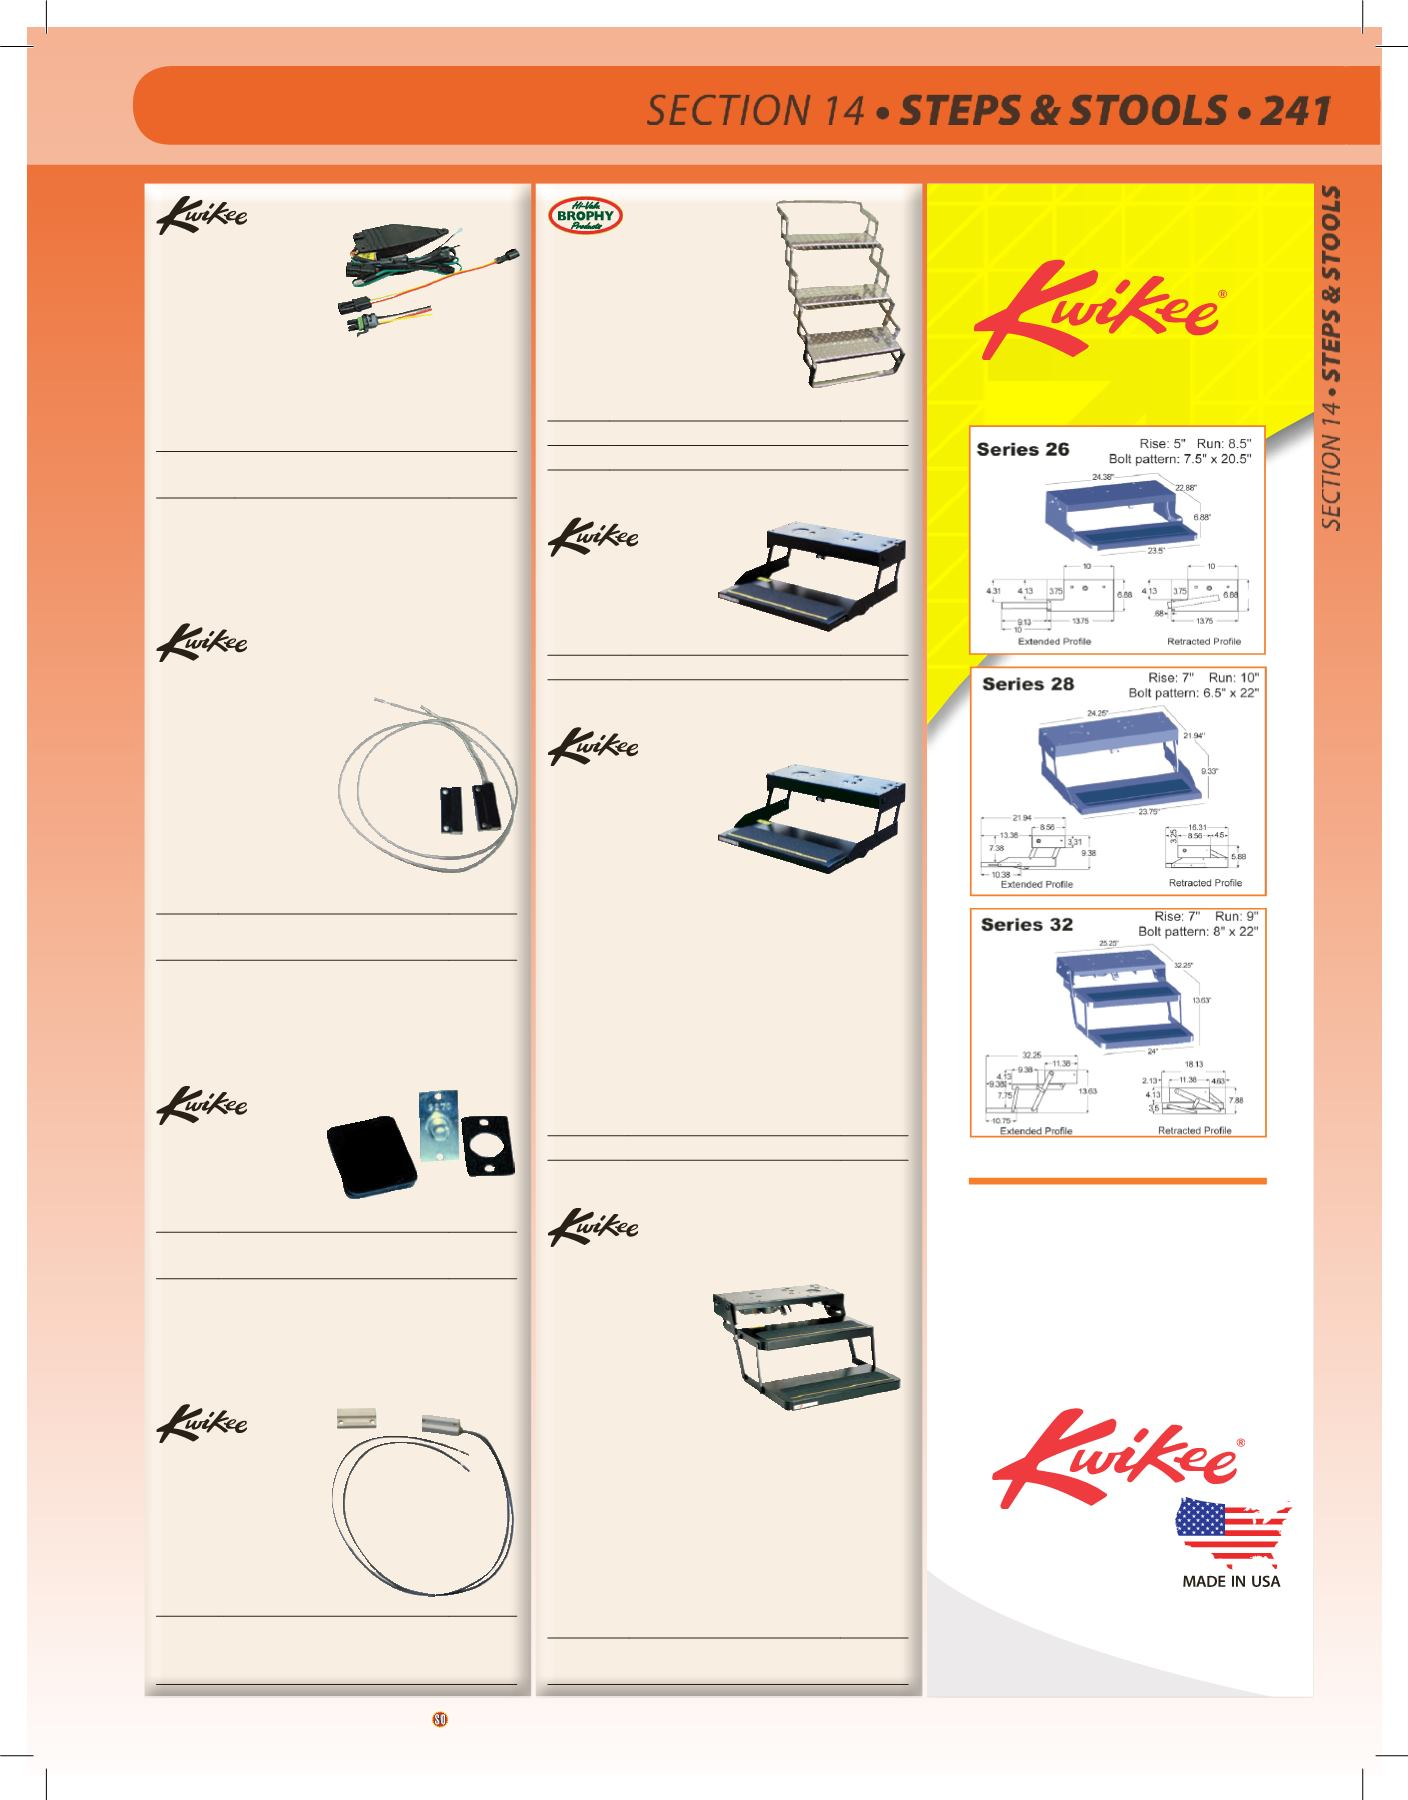 01 Electrical Kwikee Step Wiring Diagram 28 Page 2